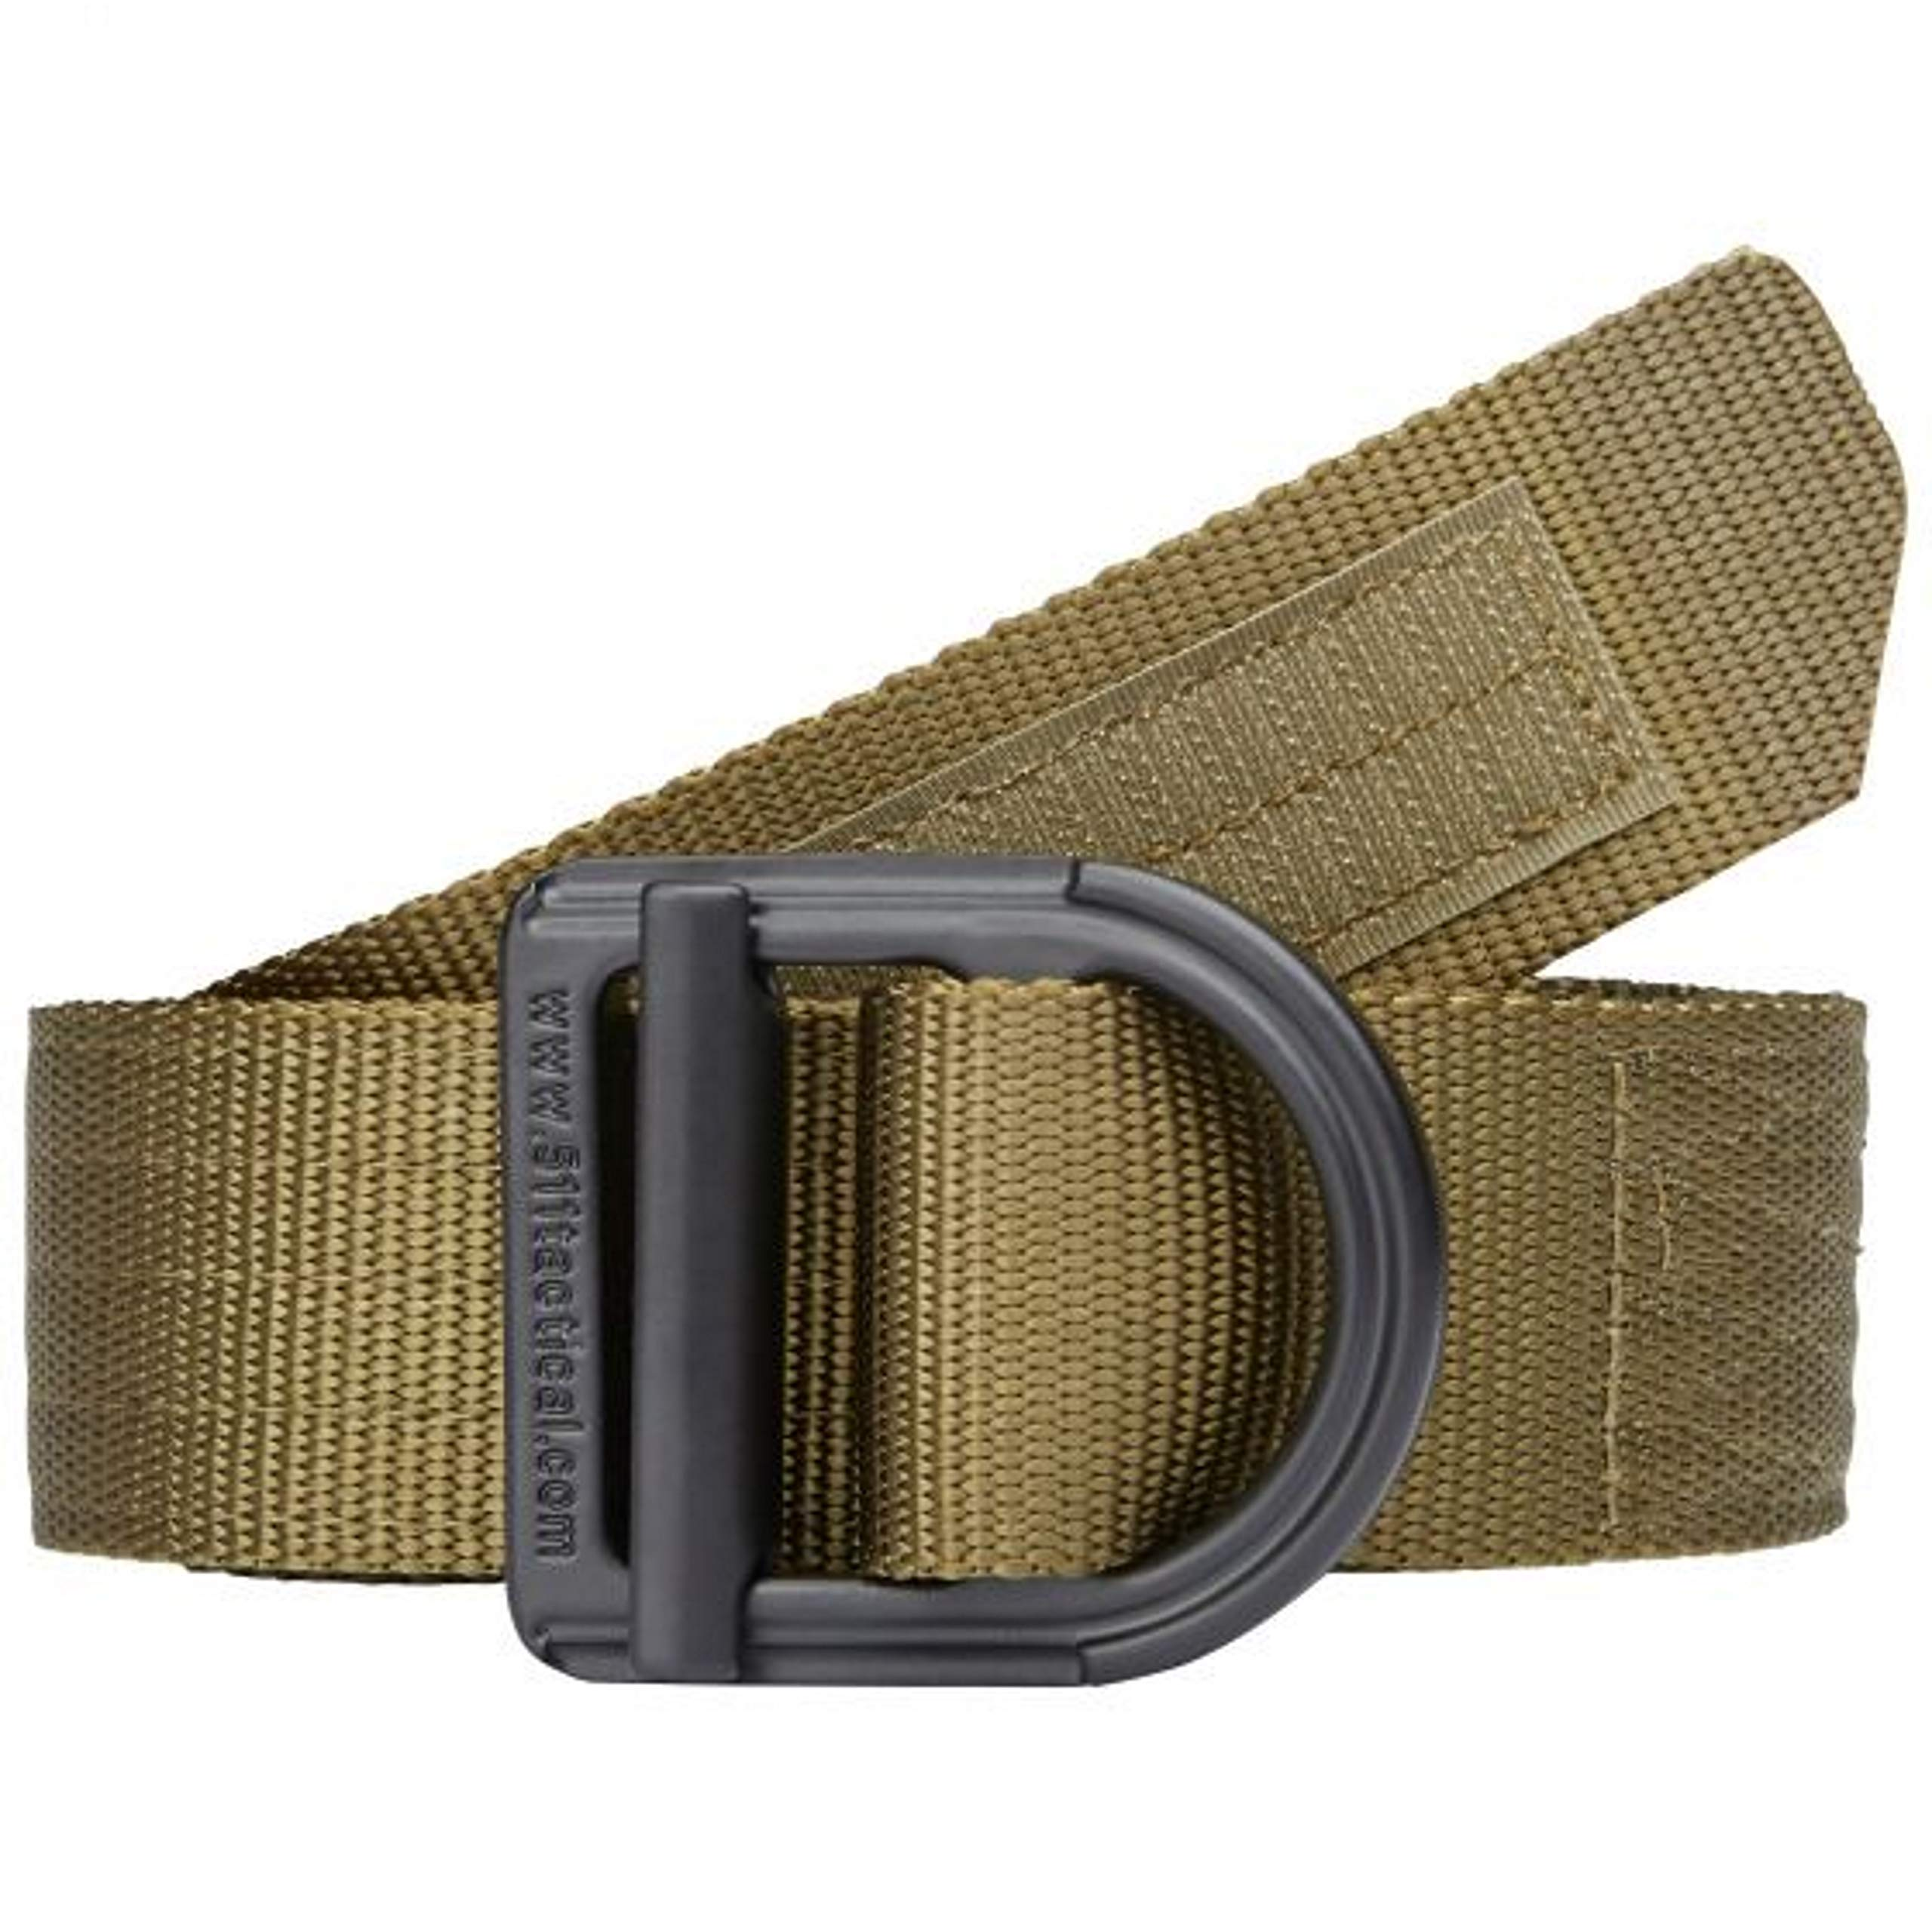 5.11  Trainer 1.5'' Tactical Belt, Heavy Duty for Military and Law Enforcement, Style 59409, TDU Green (190), 4XL by 5.11